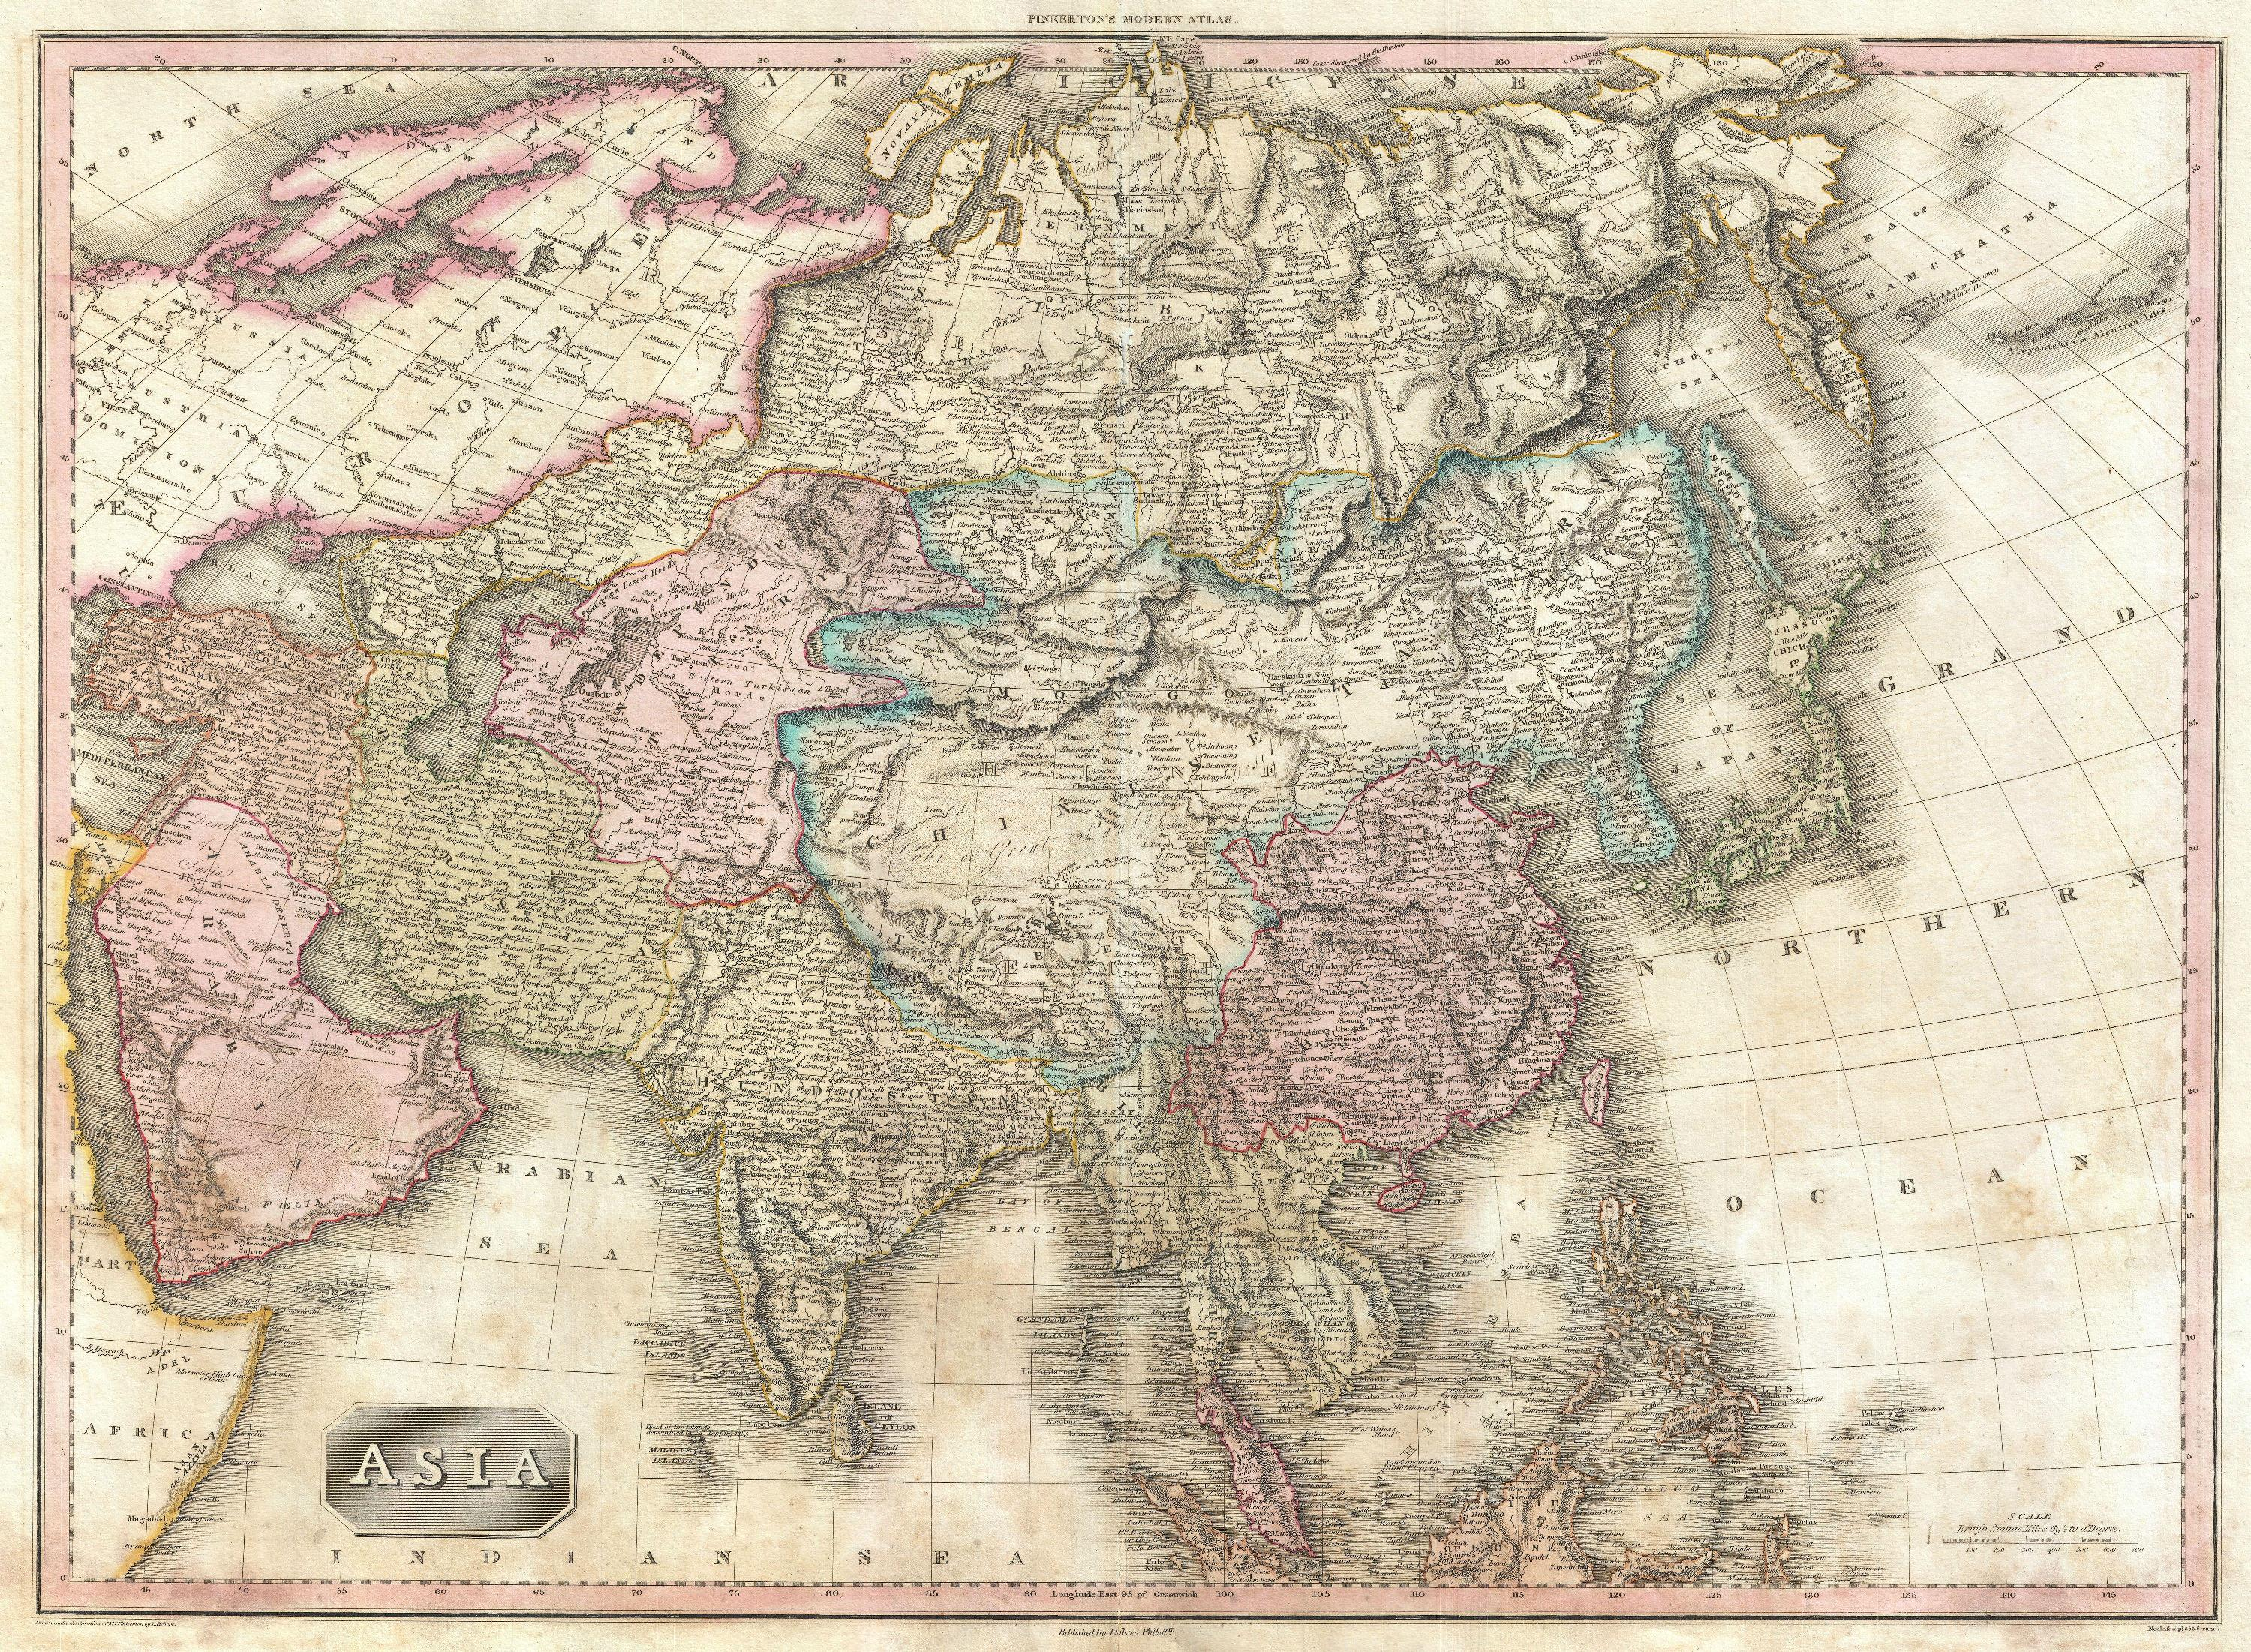 Map of Asia from Pinkerton's Modern Atlas, 1818 (Library of Congress)